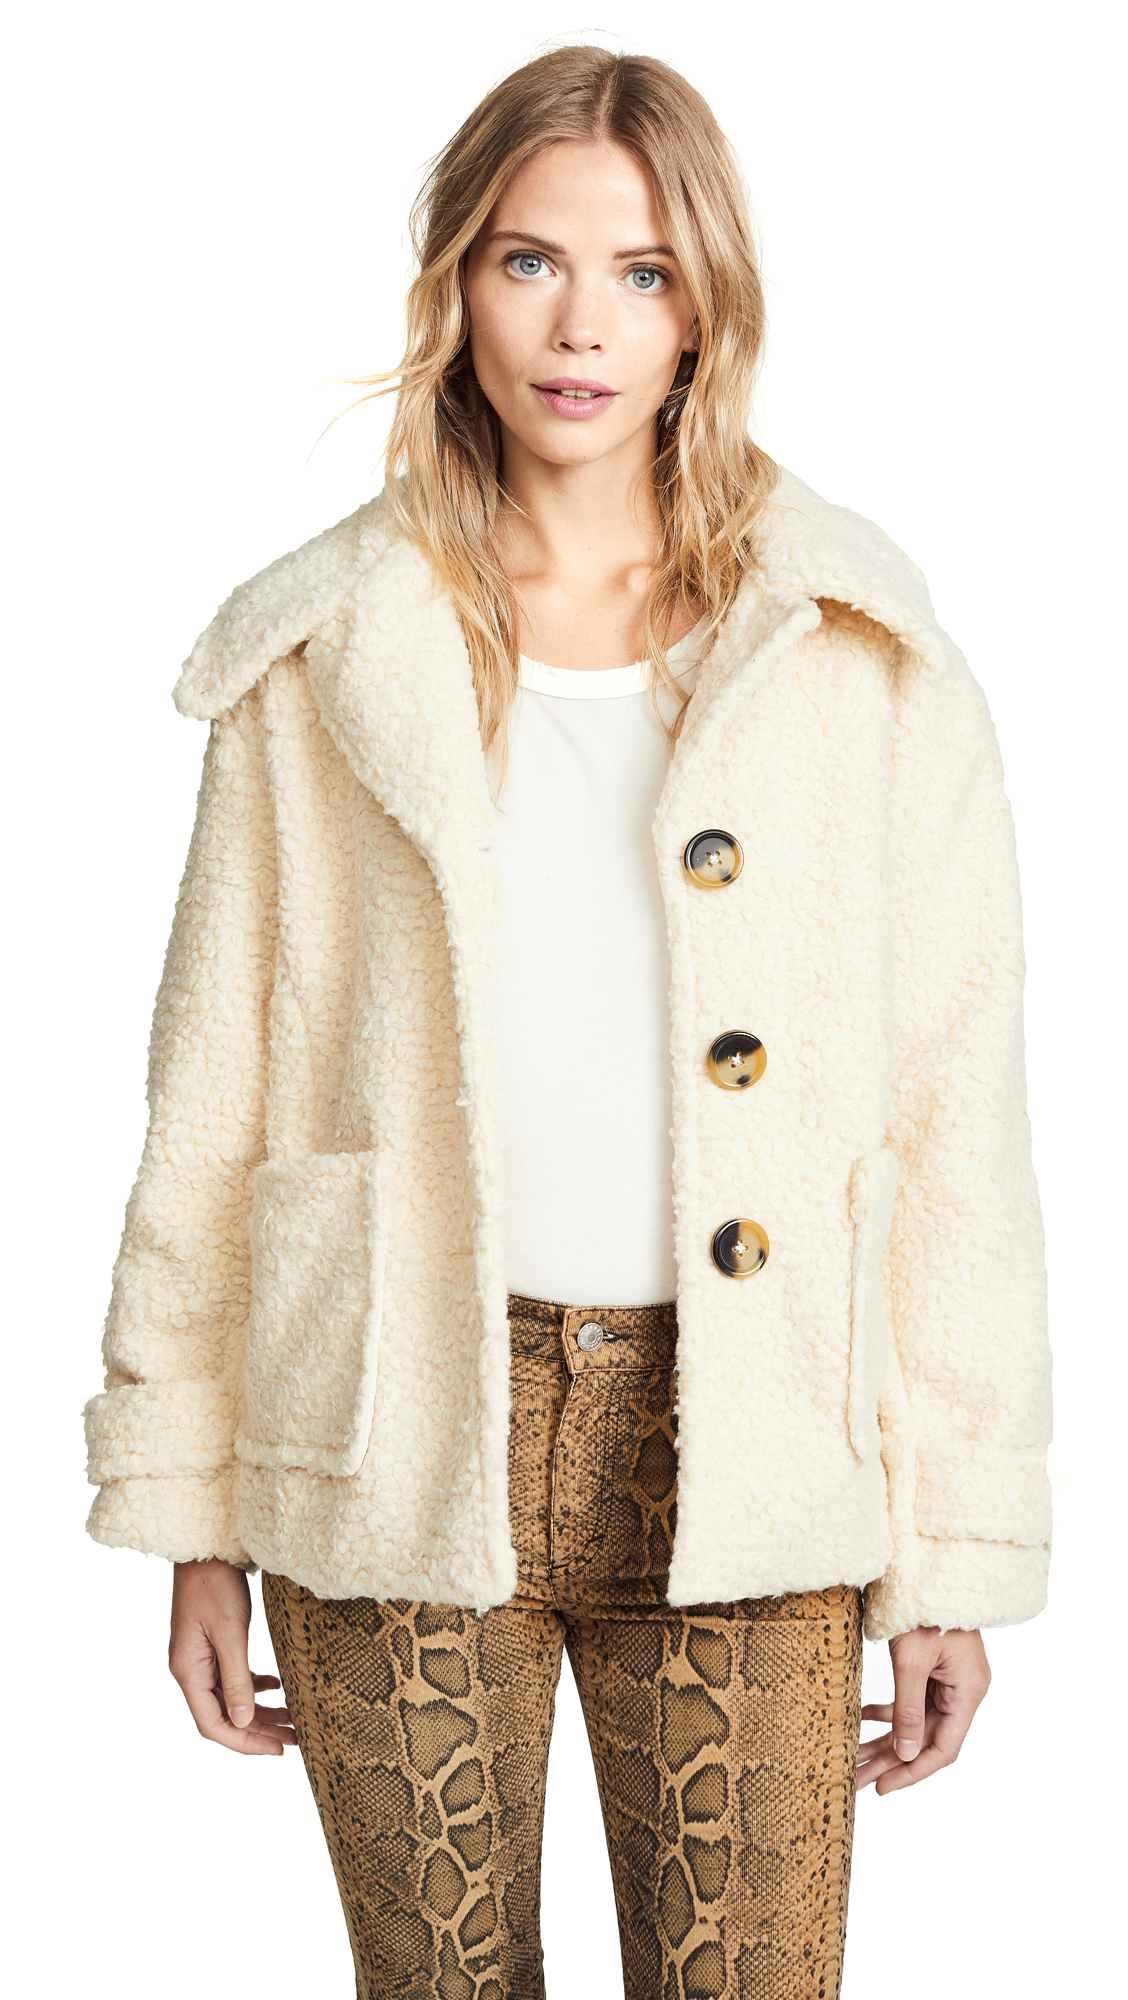 Free People So Soft Cozy Peacoat - Ivory